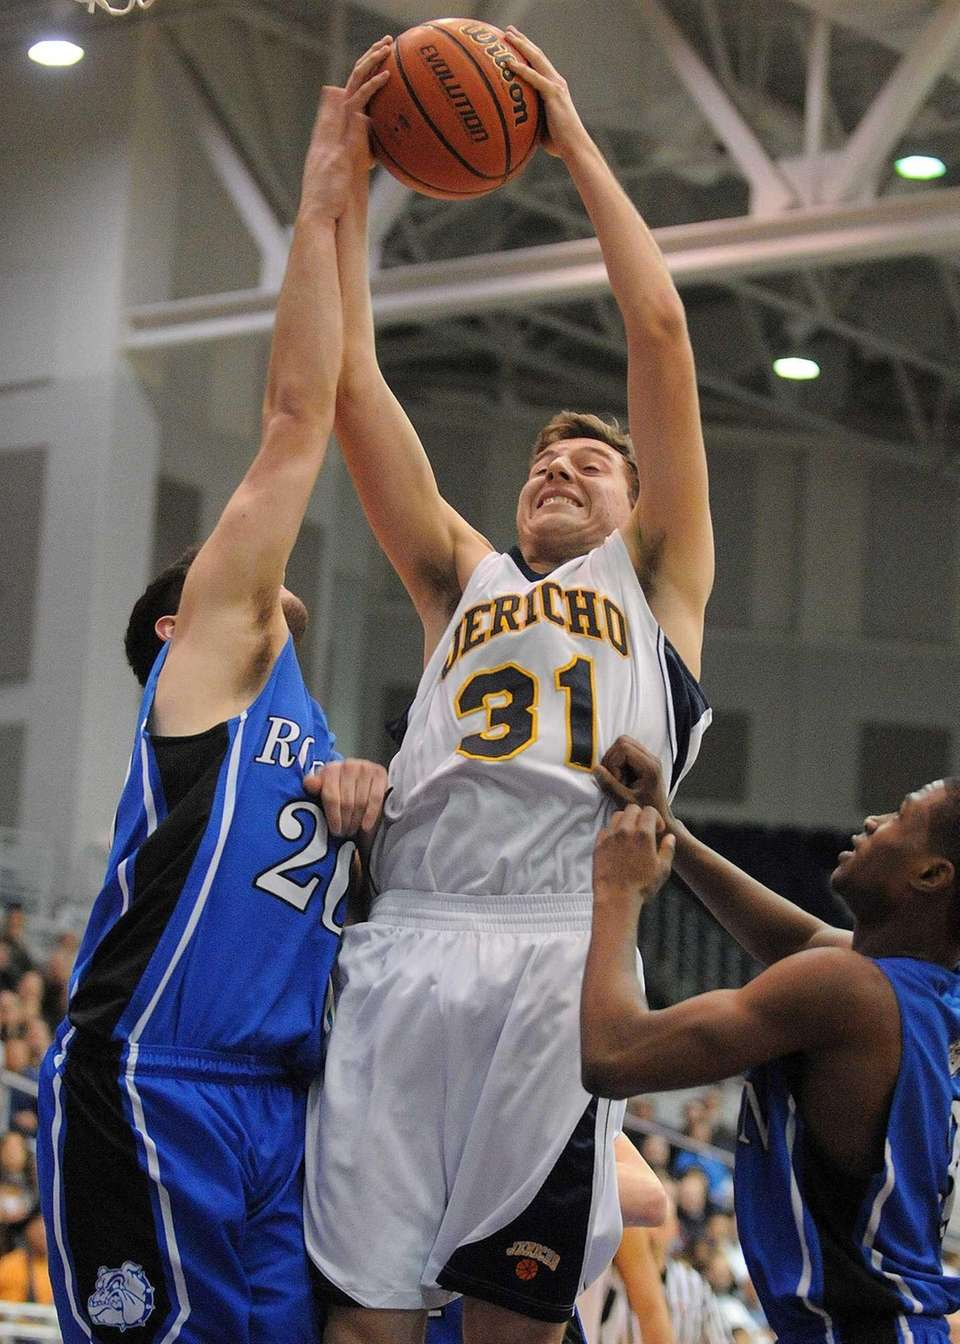 Jericho senior Erik Kanzer grabs a rebound during